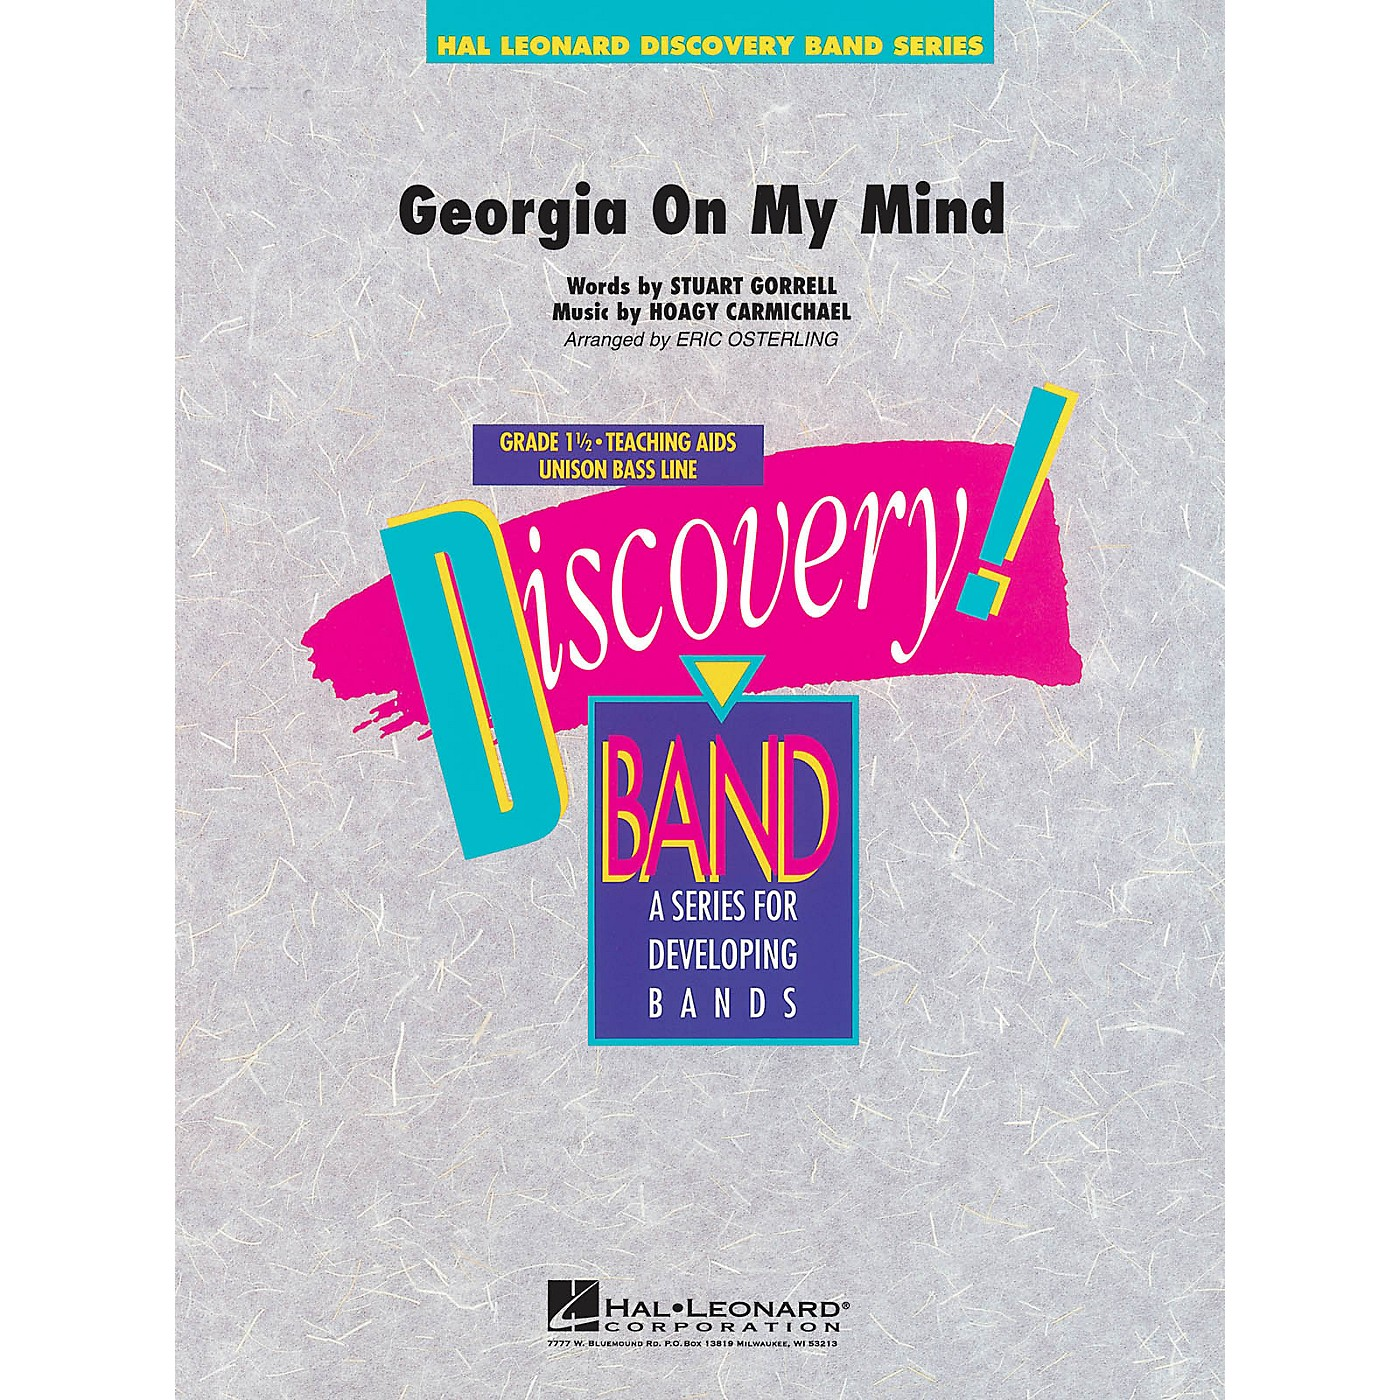 Hal Leonard Georgia on My Mind Concert Band Level 1.5 Arranged by Eric Osterling thumbnail